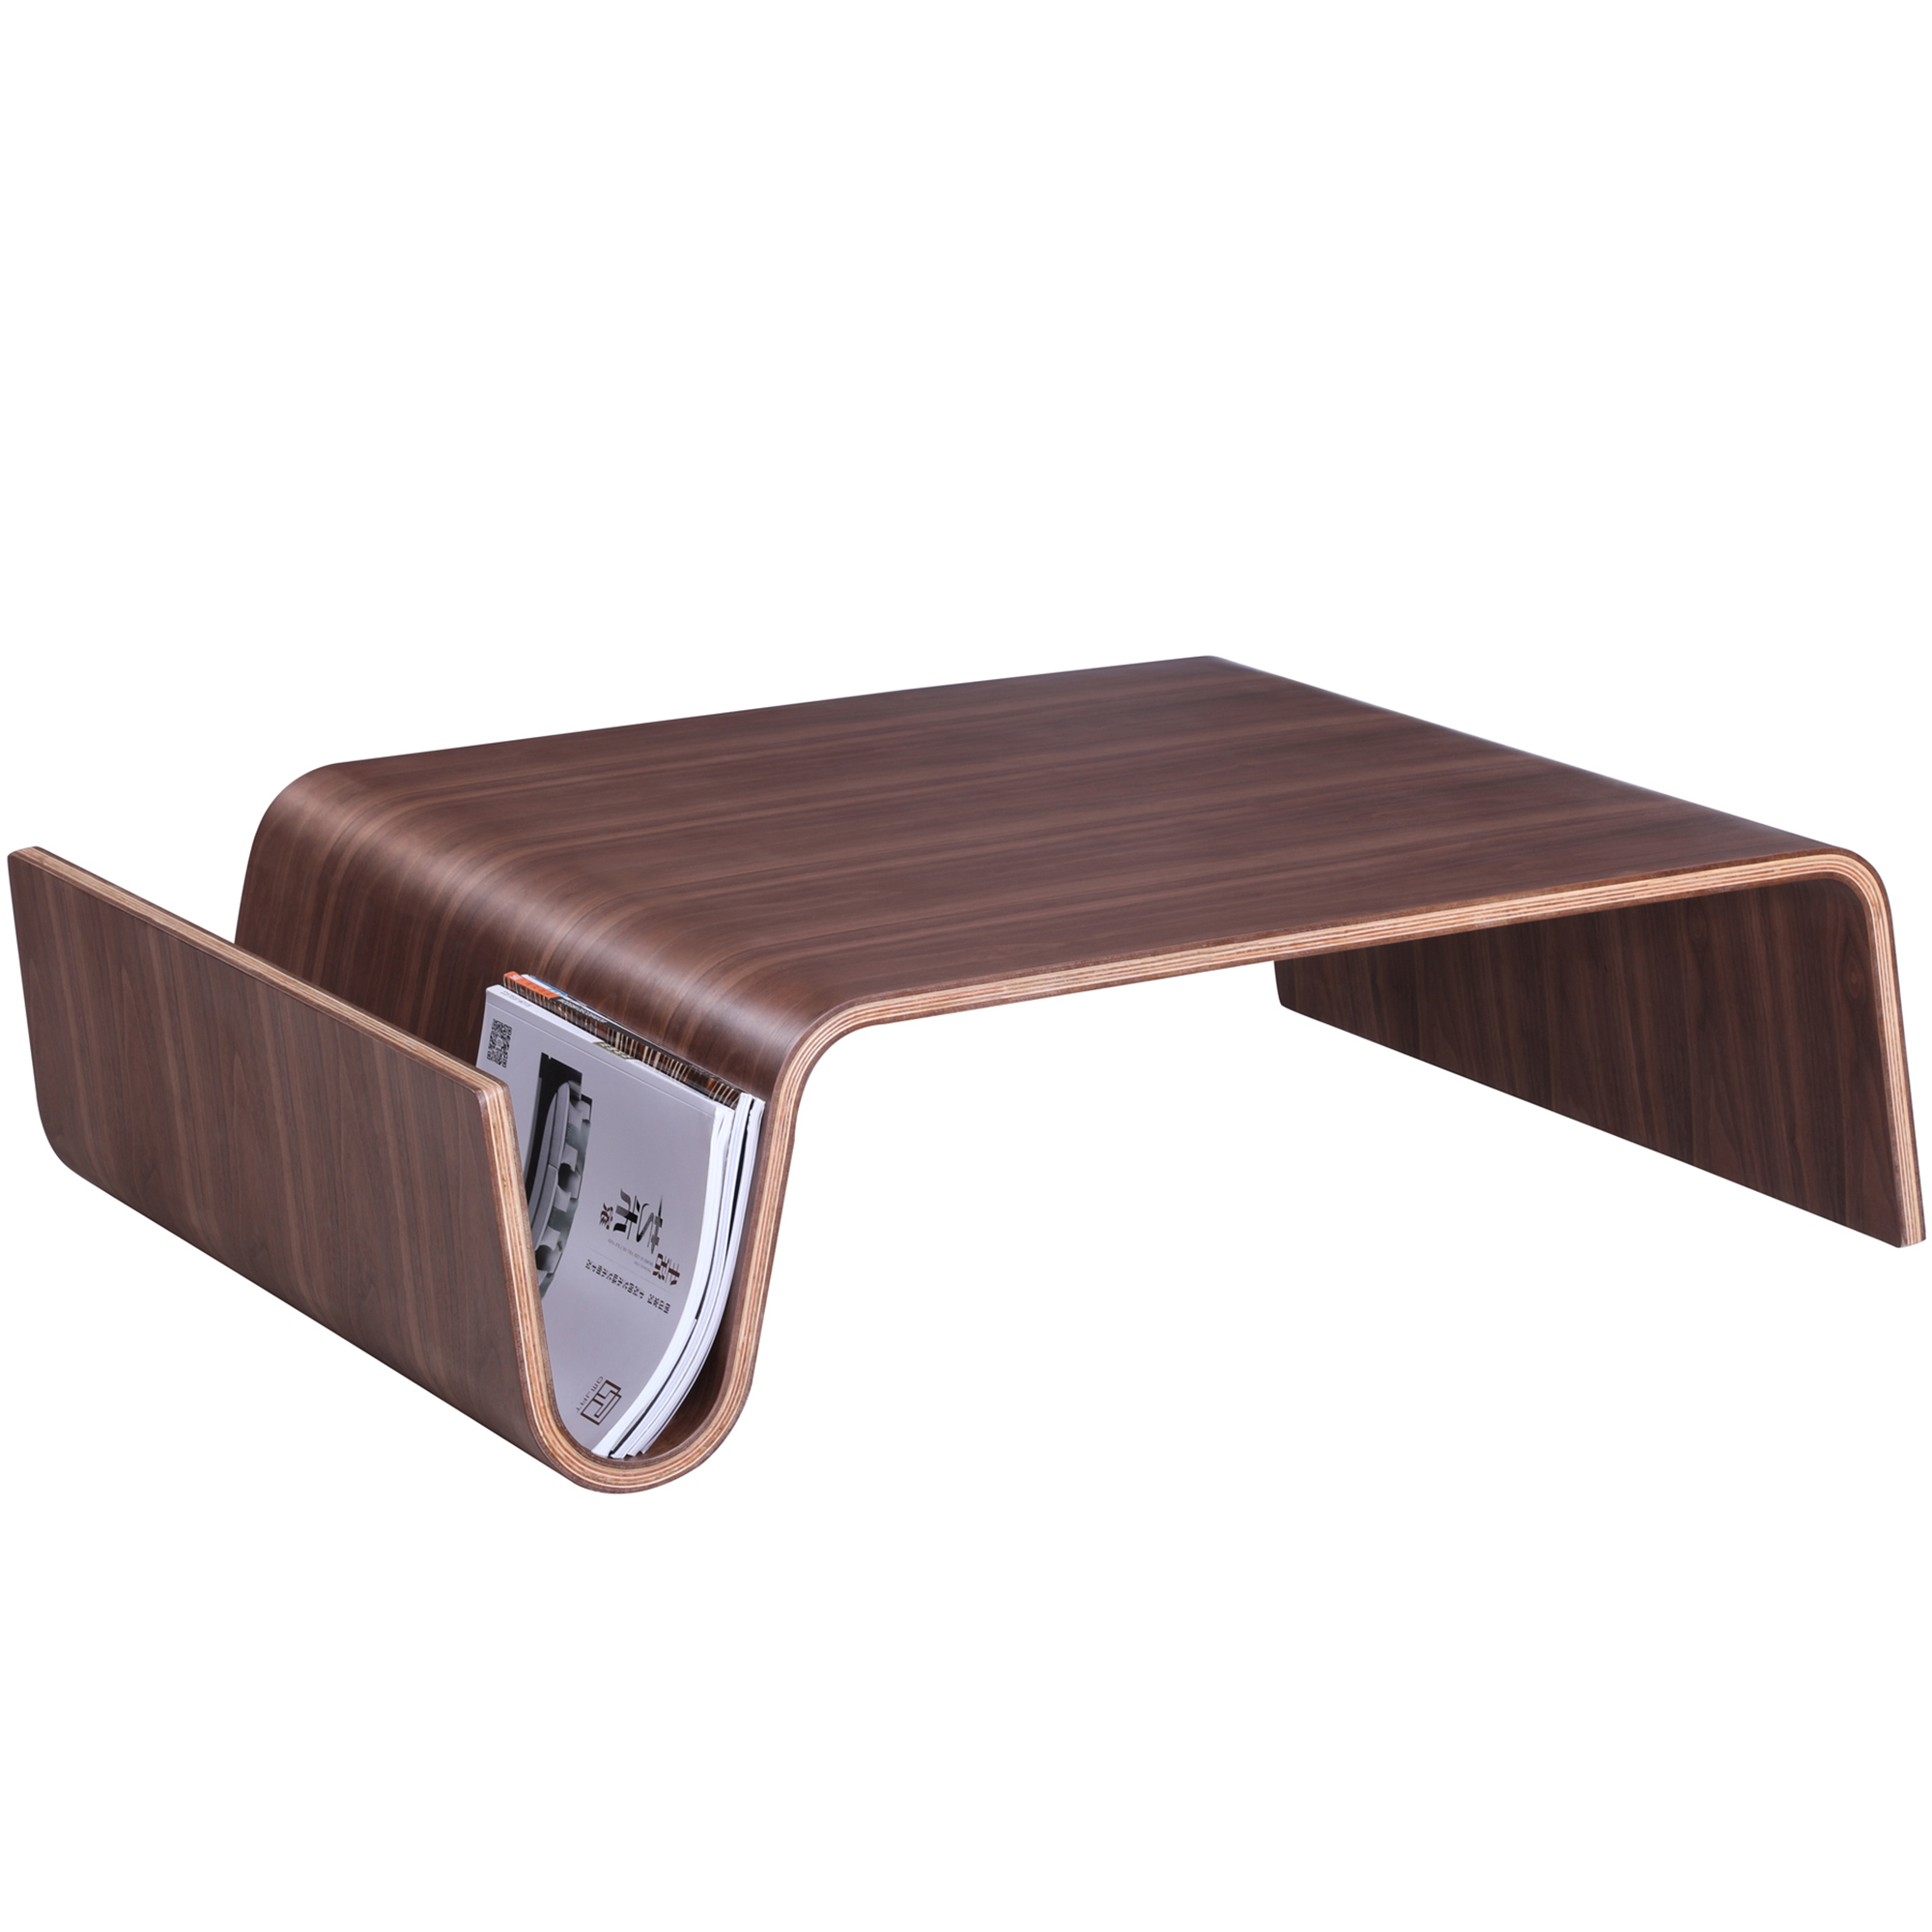 NEW Milan Direct Light Walnut Eric Pfeiffer Replica Offi Scando - Scando coffee table